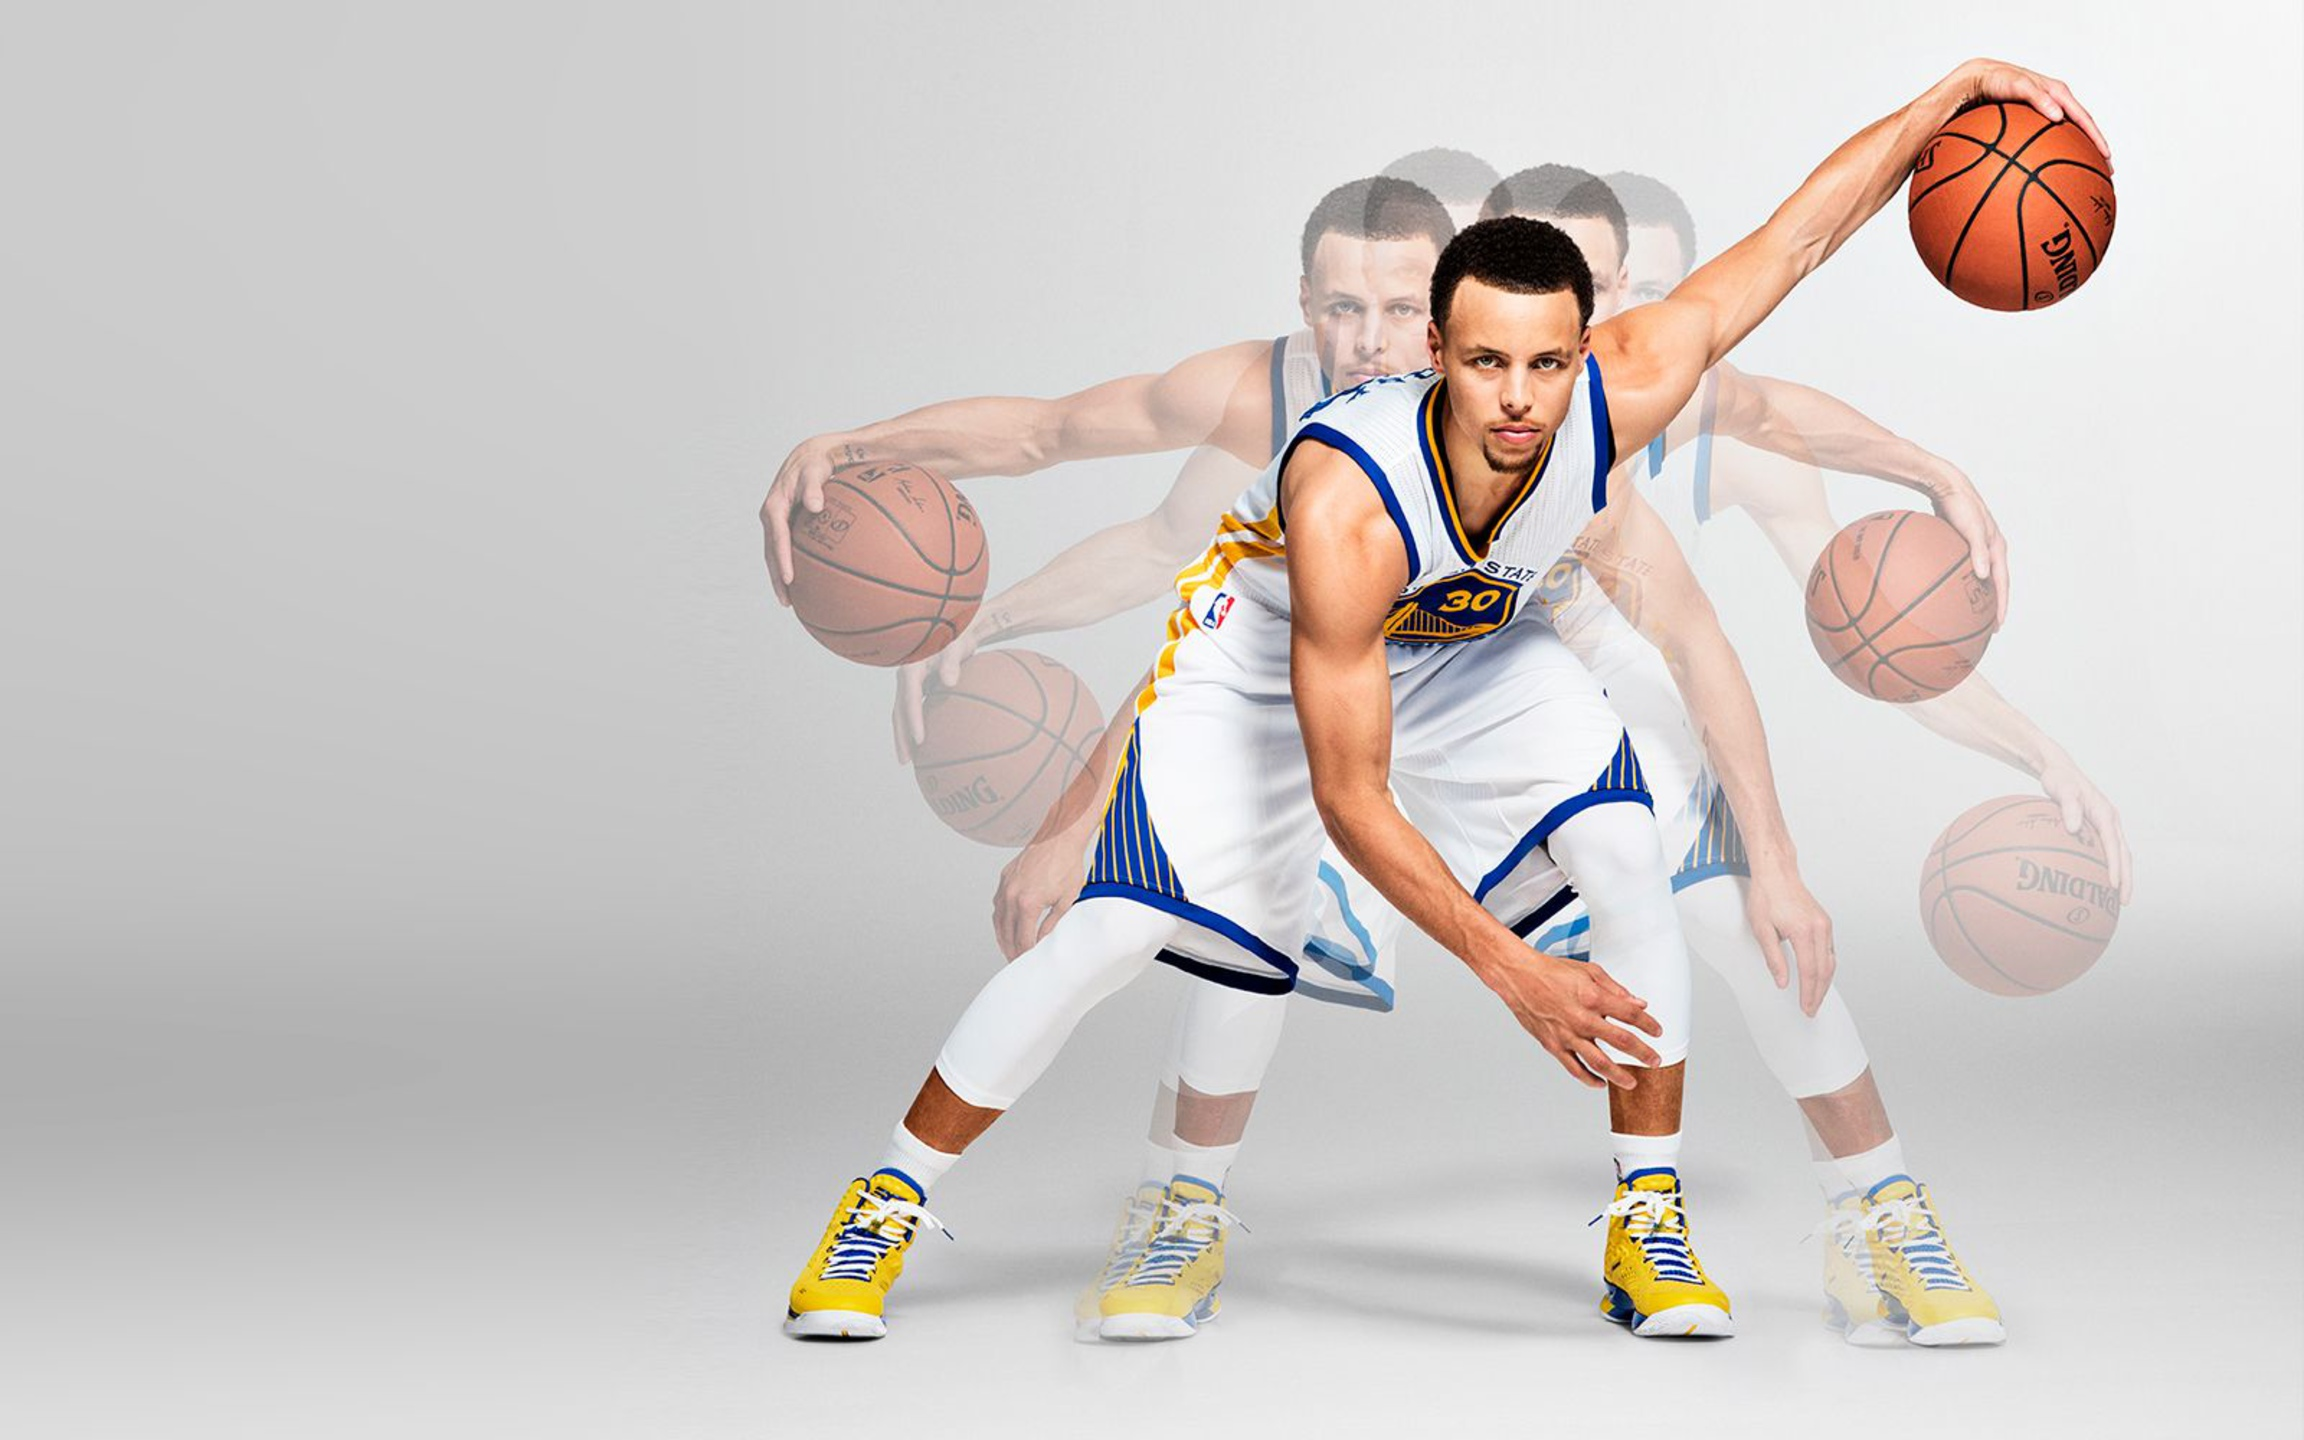 Fantastic Wallpaper Logo Stephen Curry - Sports_Stephen_Curry_5a5fac5d7bdff36837fbc084  Graphic_14864.jpeg